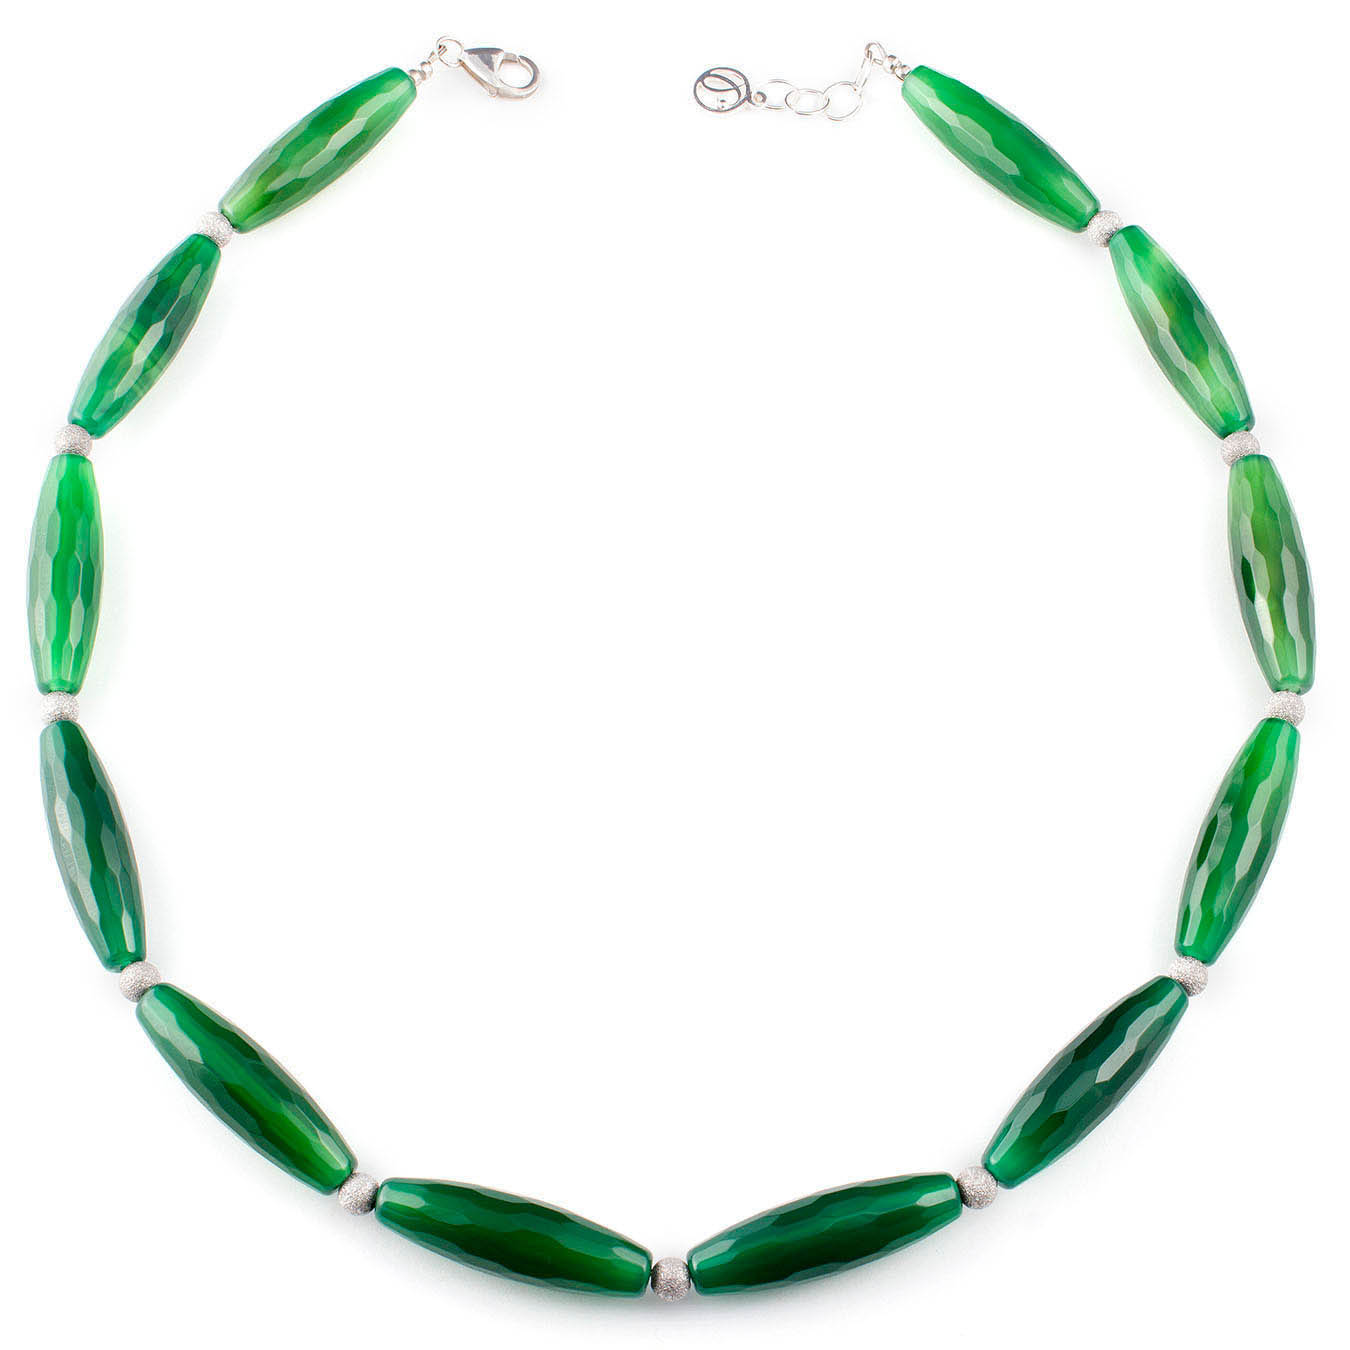 Handcrafted statement green agate necklace with 925 silver beads